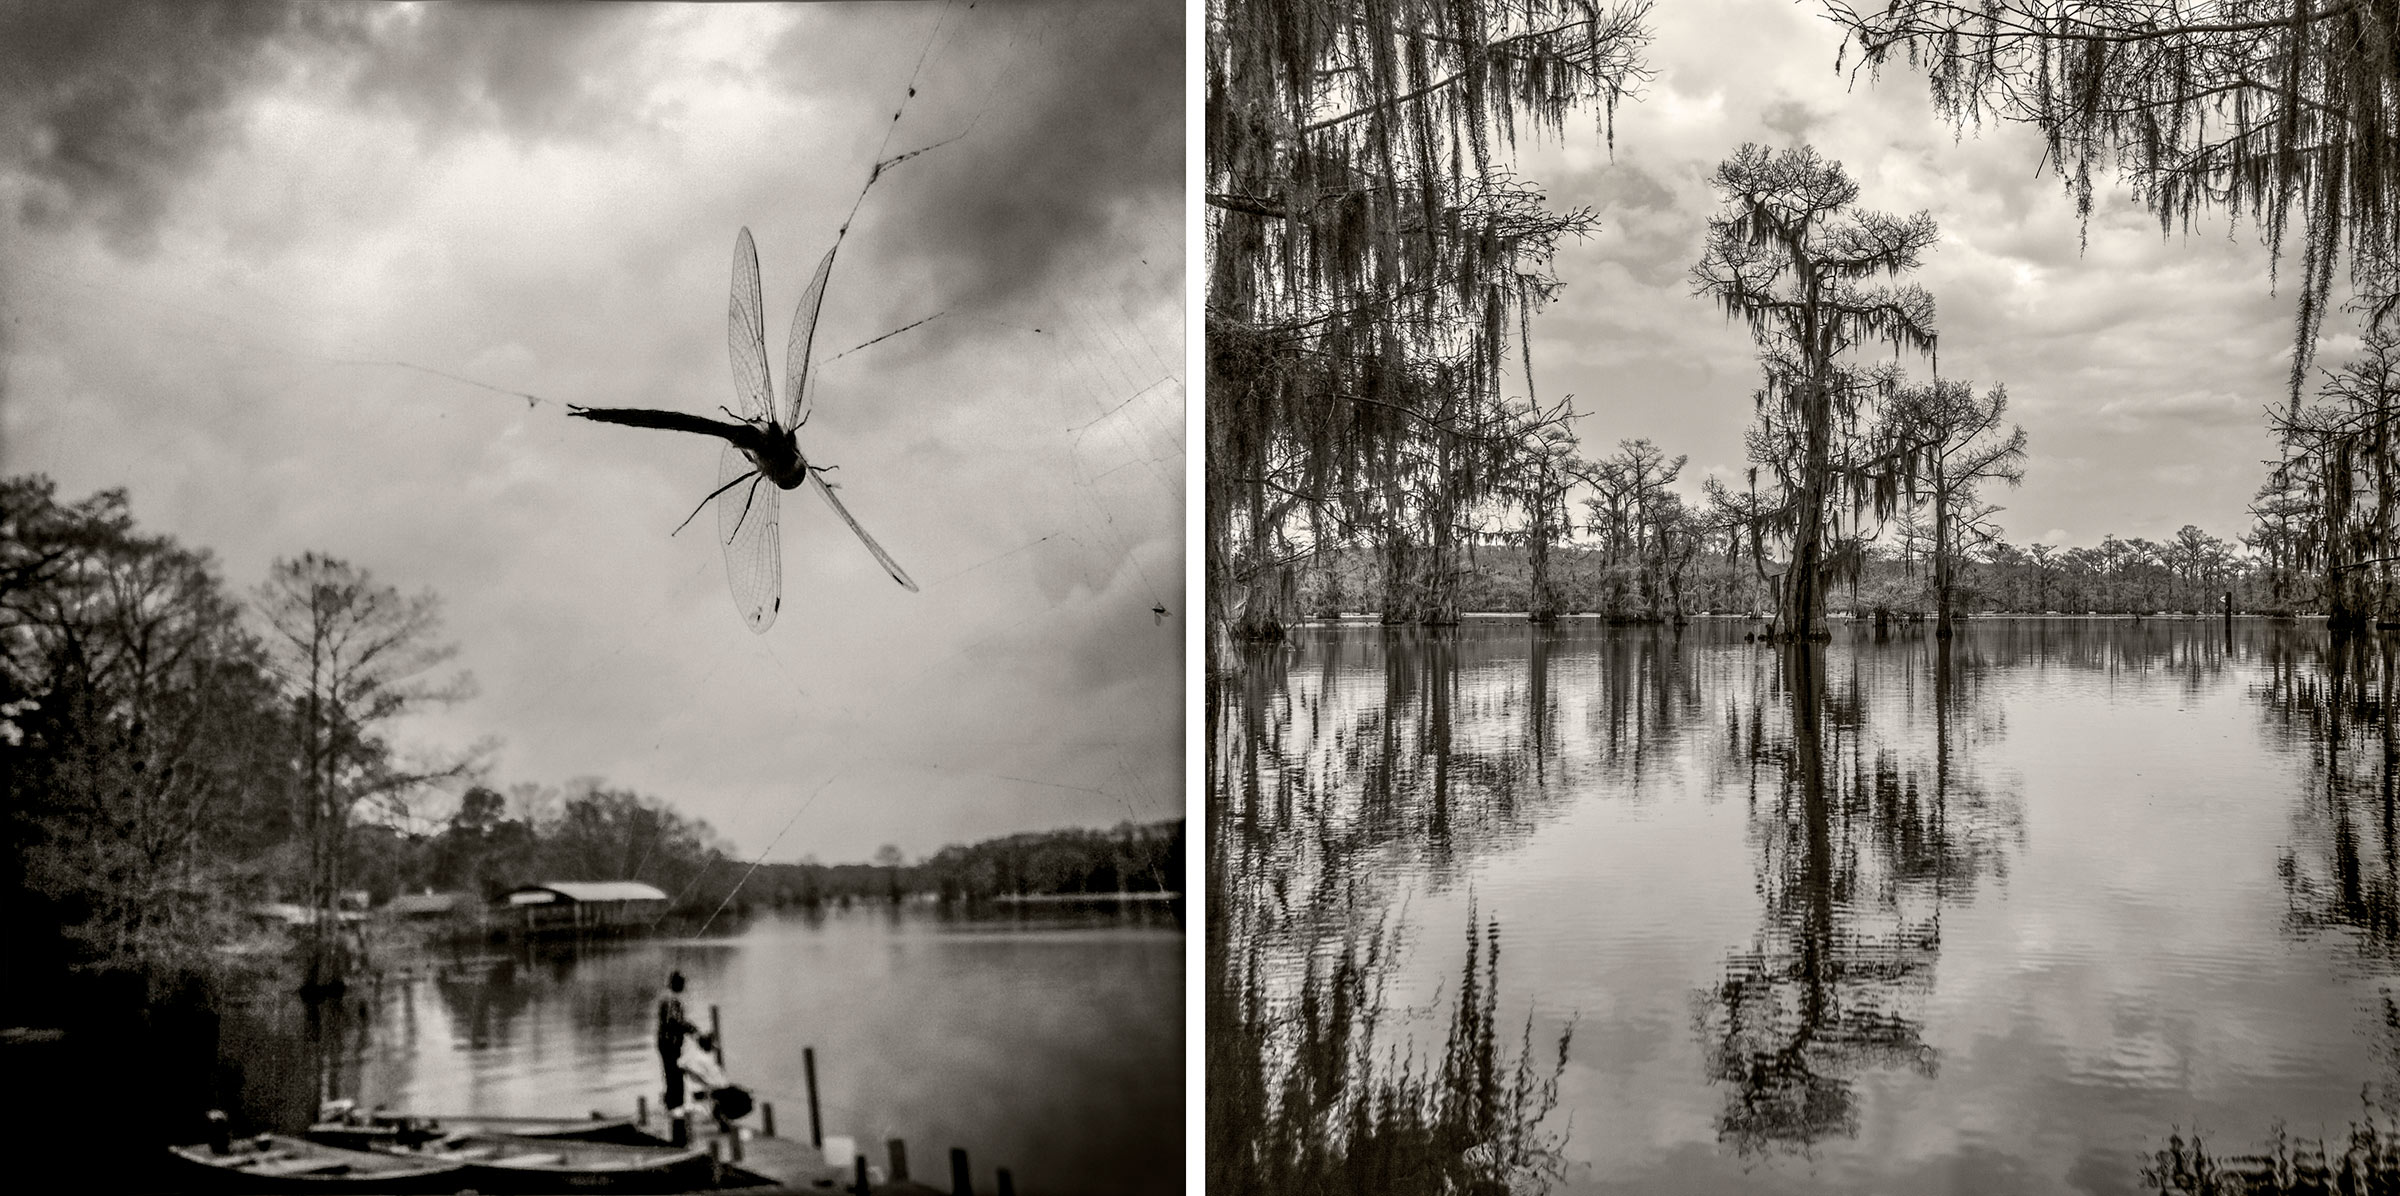 Dragon Fly / Waterway - Caddo Lake